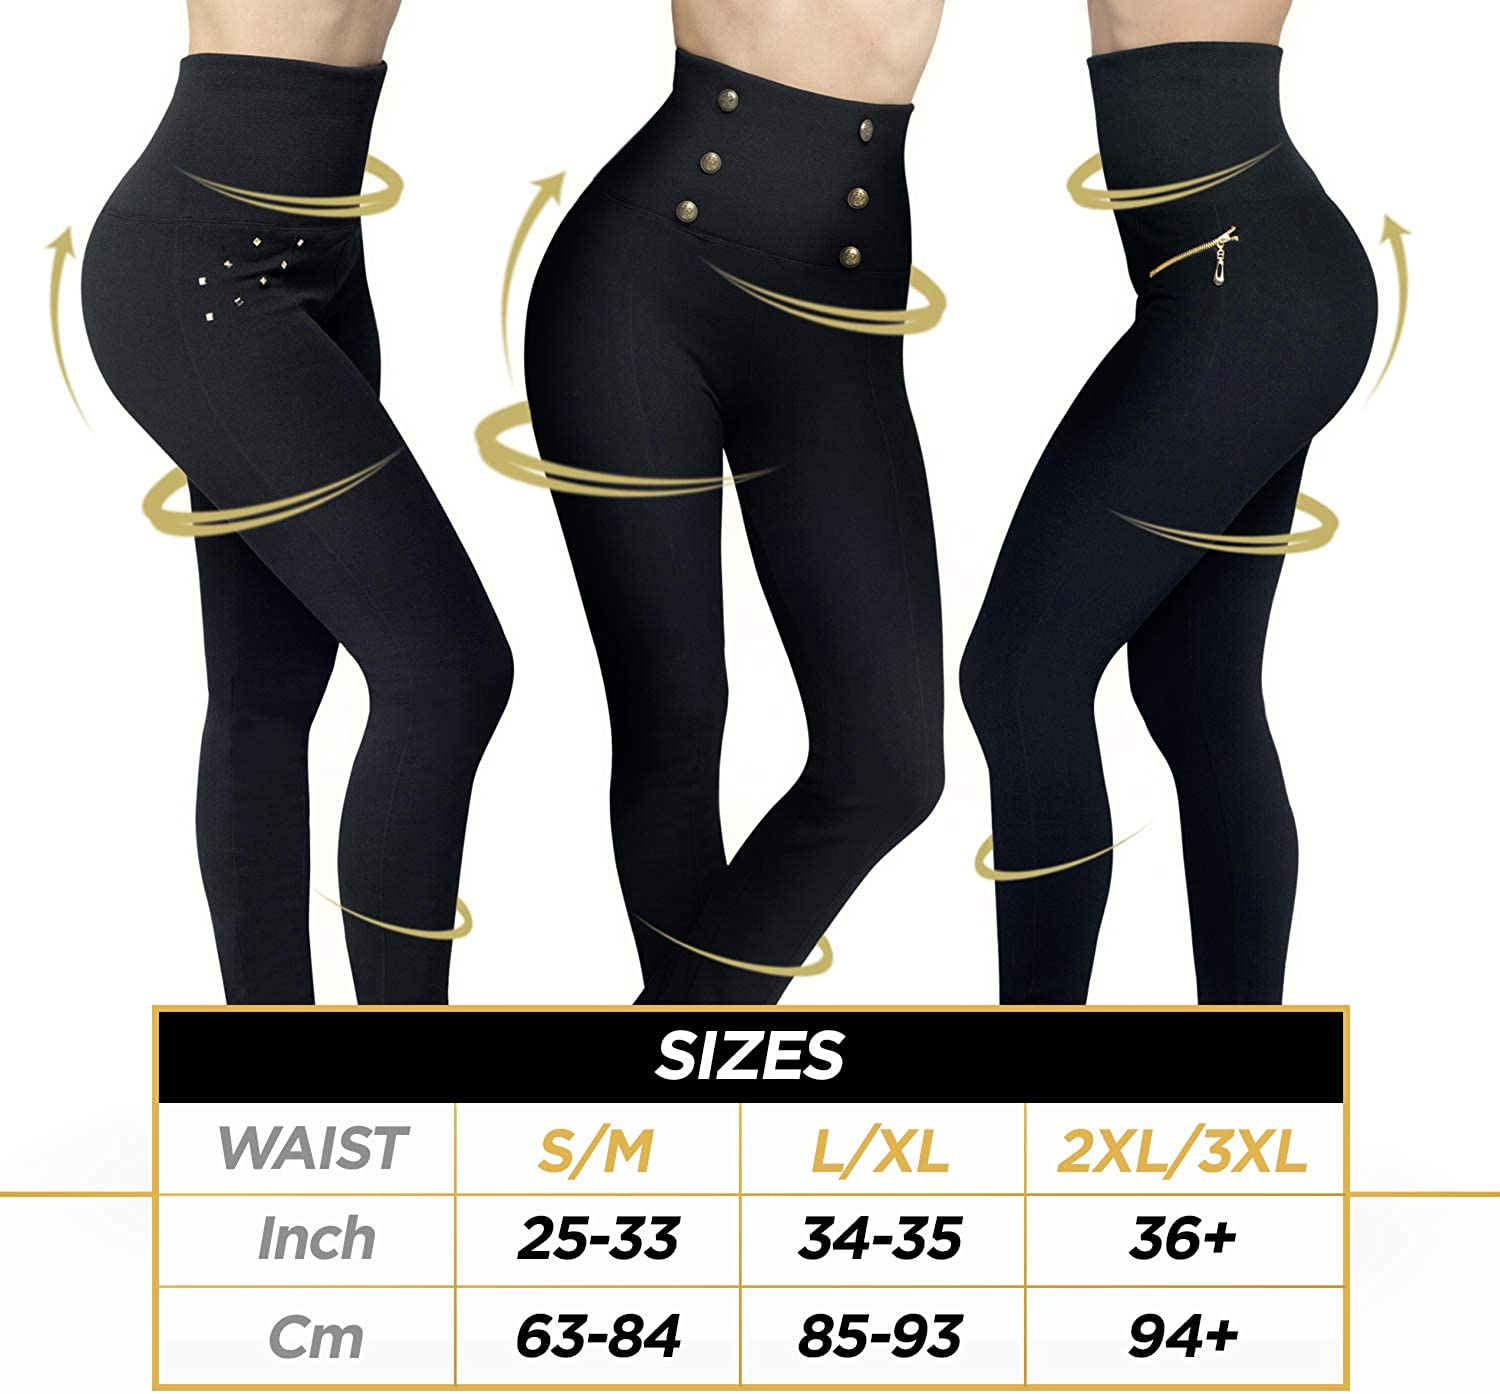 Hollywood Pants Leggings High Waisted Shaping Pants Comfort Of Leggings Power Of Shapewear 3 Fabulous Designs In Black At Amazon Women S Clothing Store